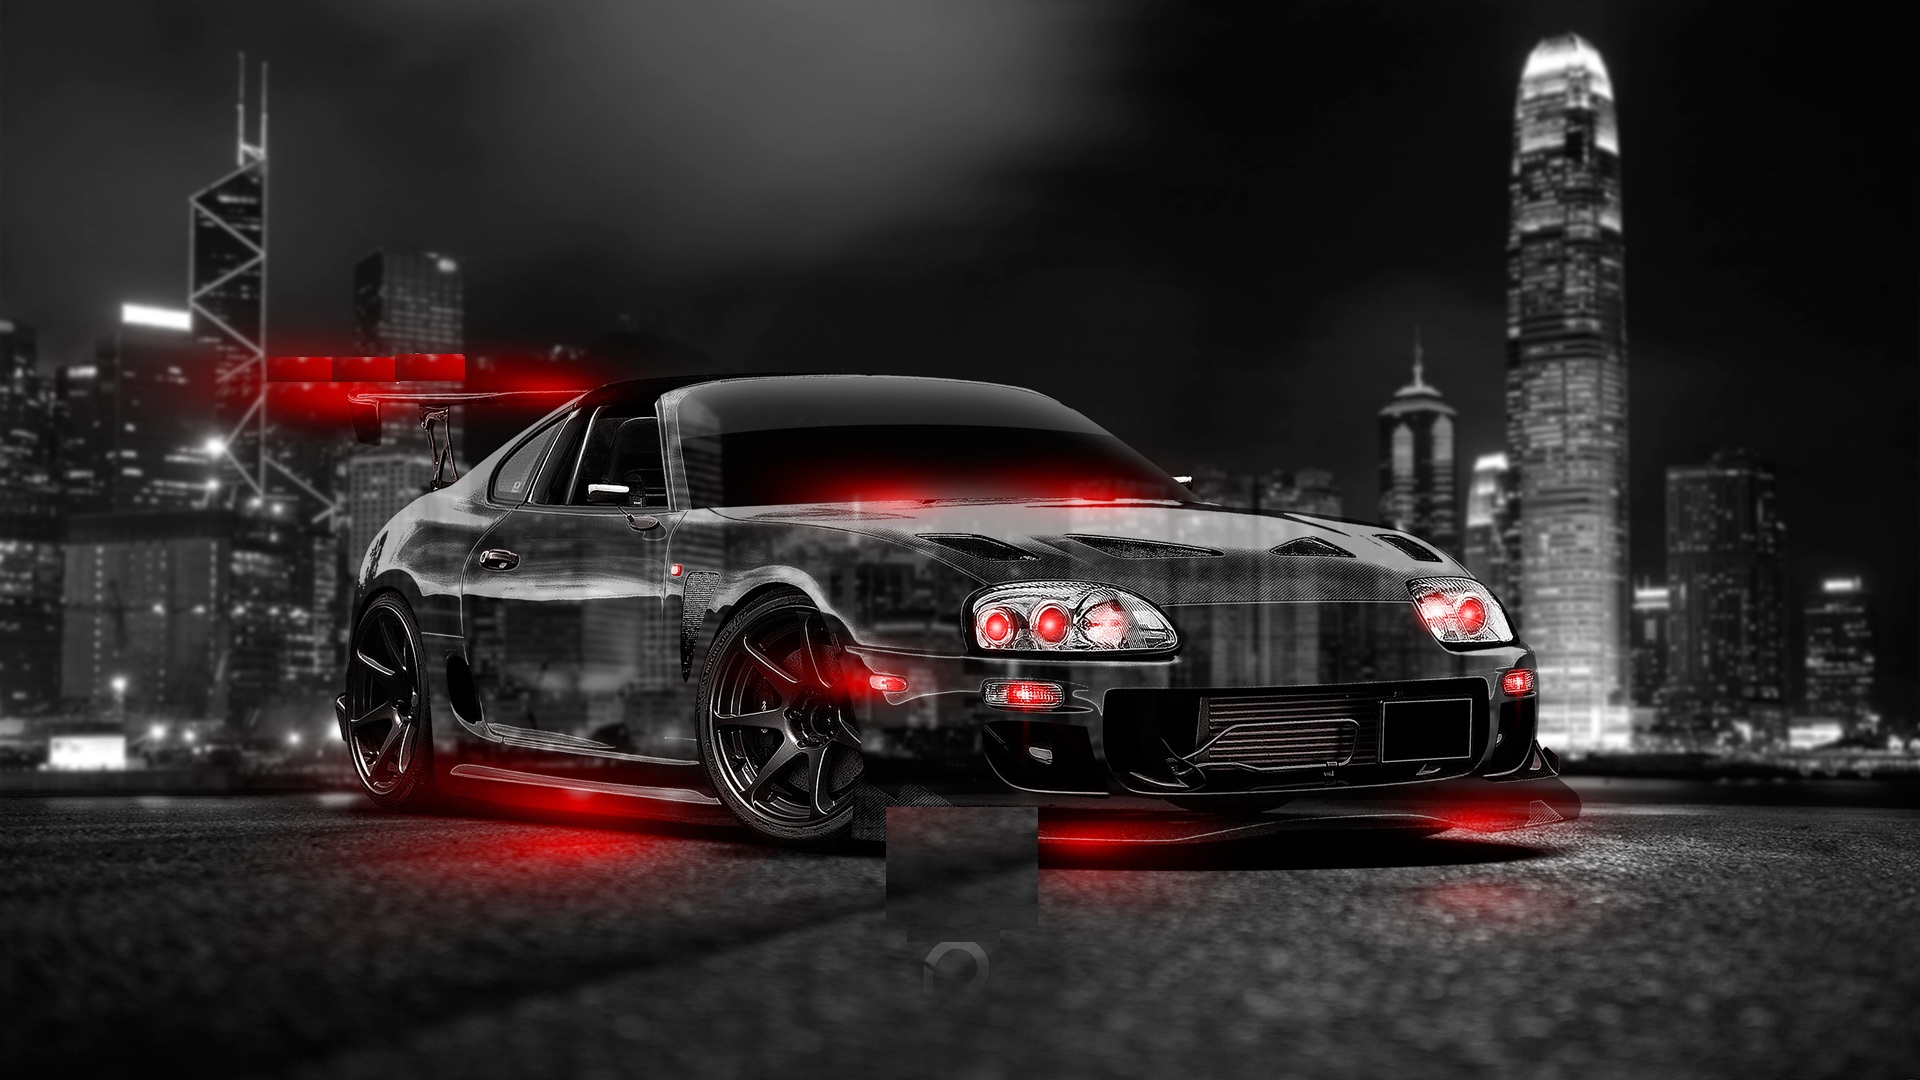 Abstract Toyota Supra Hd Wallpaper My Site